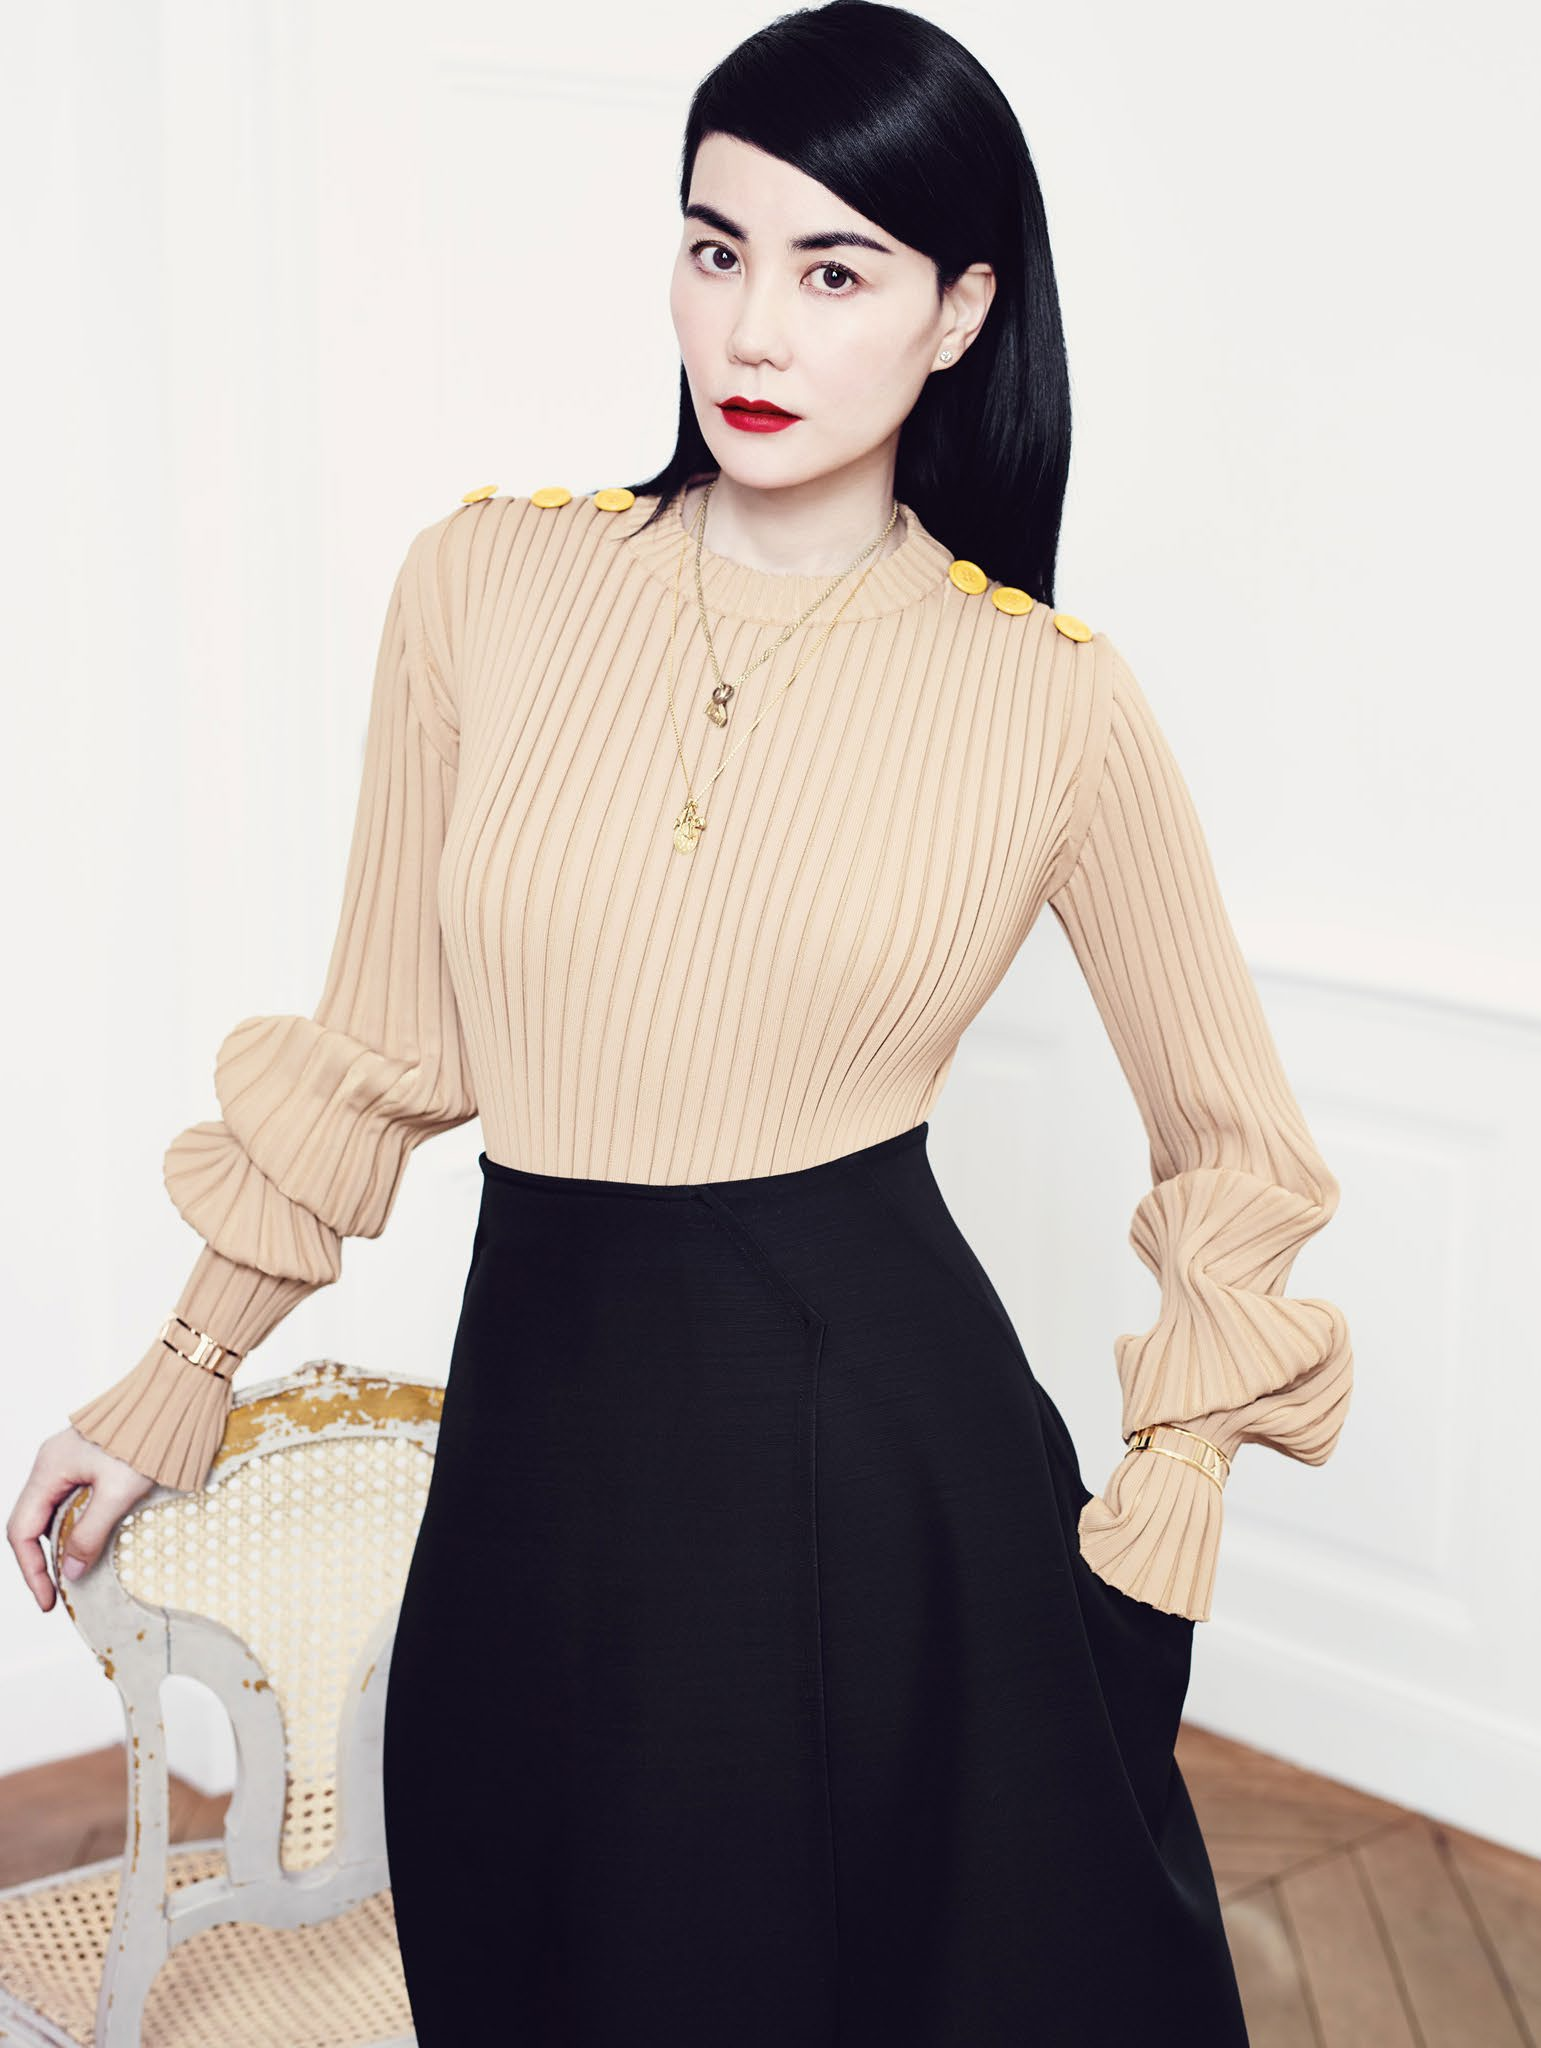 faye-wong-by-emma-summerton-for-vogue-china-june-2014-3